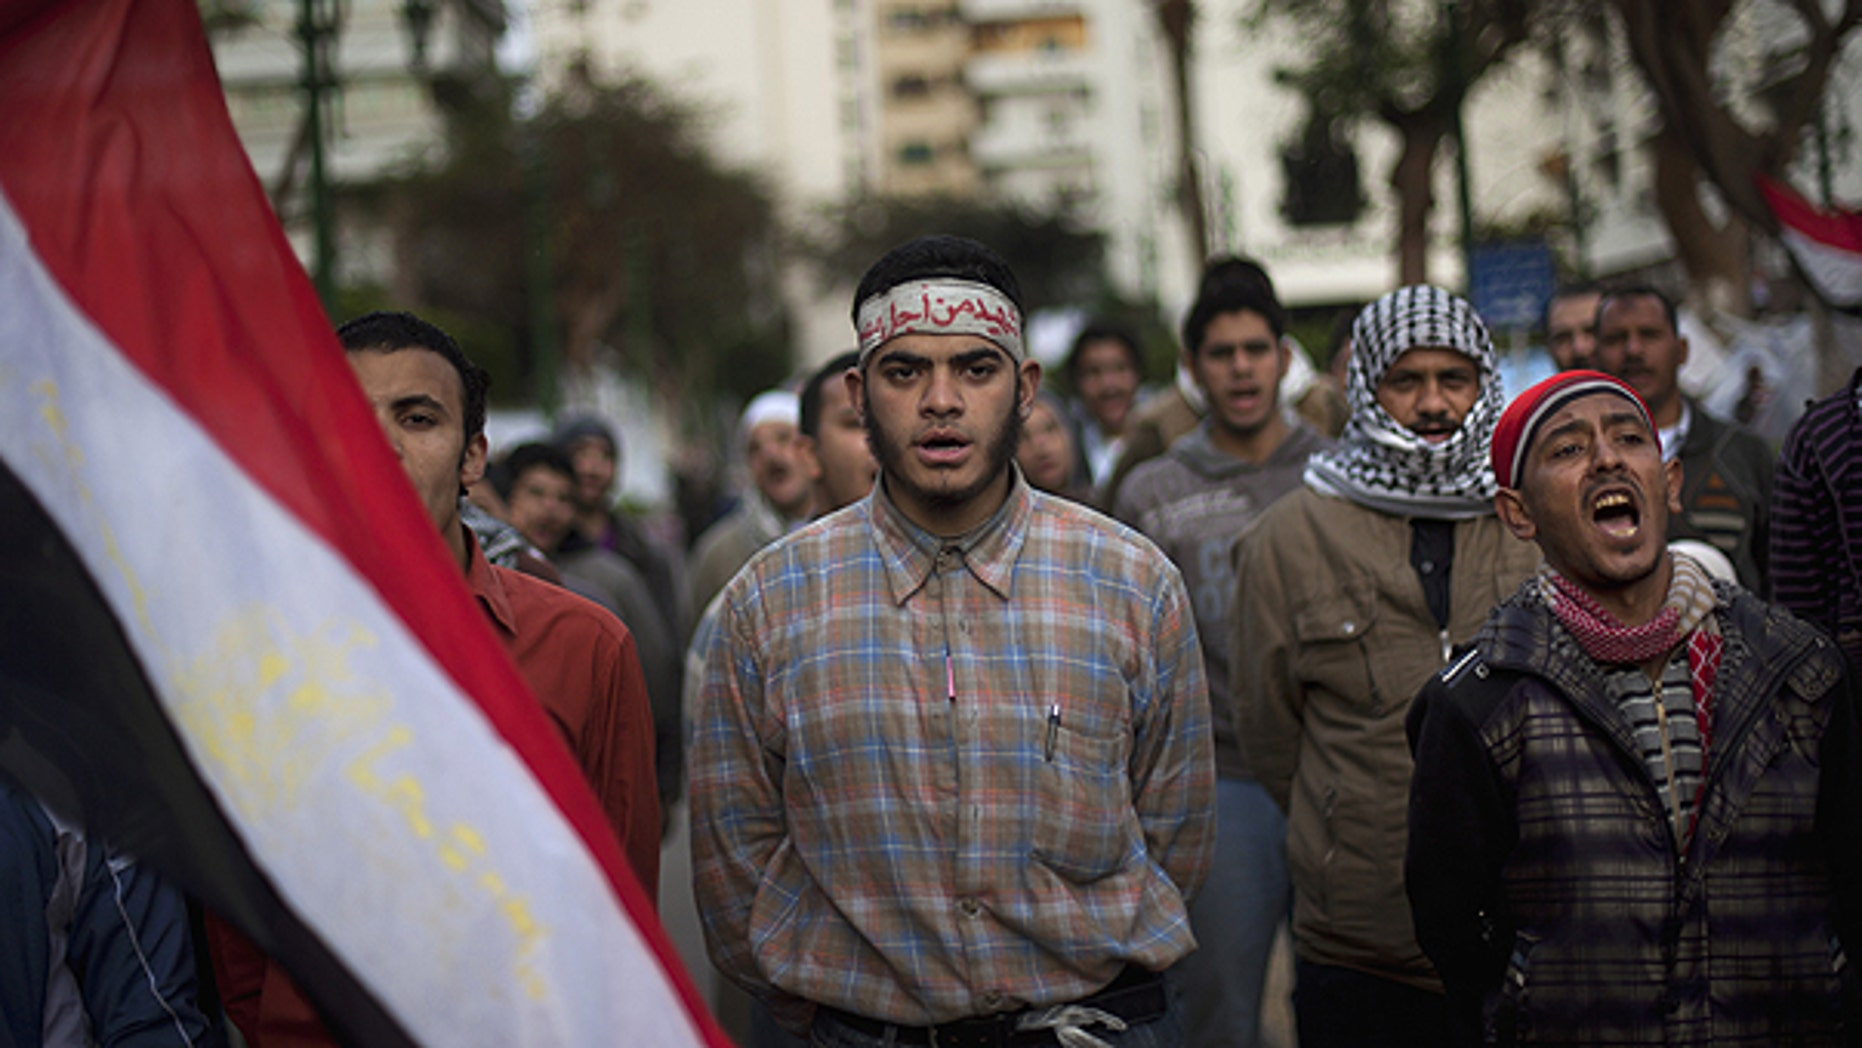 Feb. 10: Anti-government protesters shout slogans as they line up after spending the night in front of the Egyptian Parliament in Cairo, Egypt.